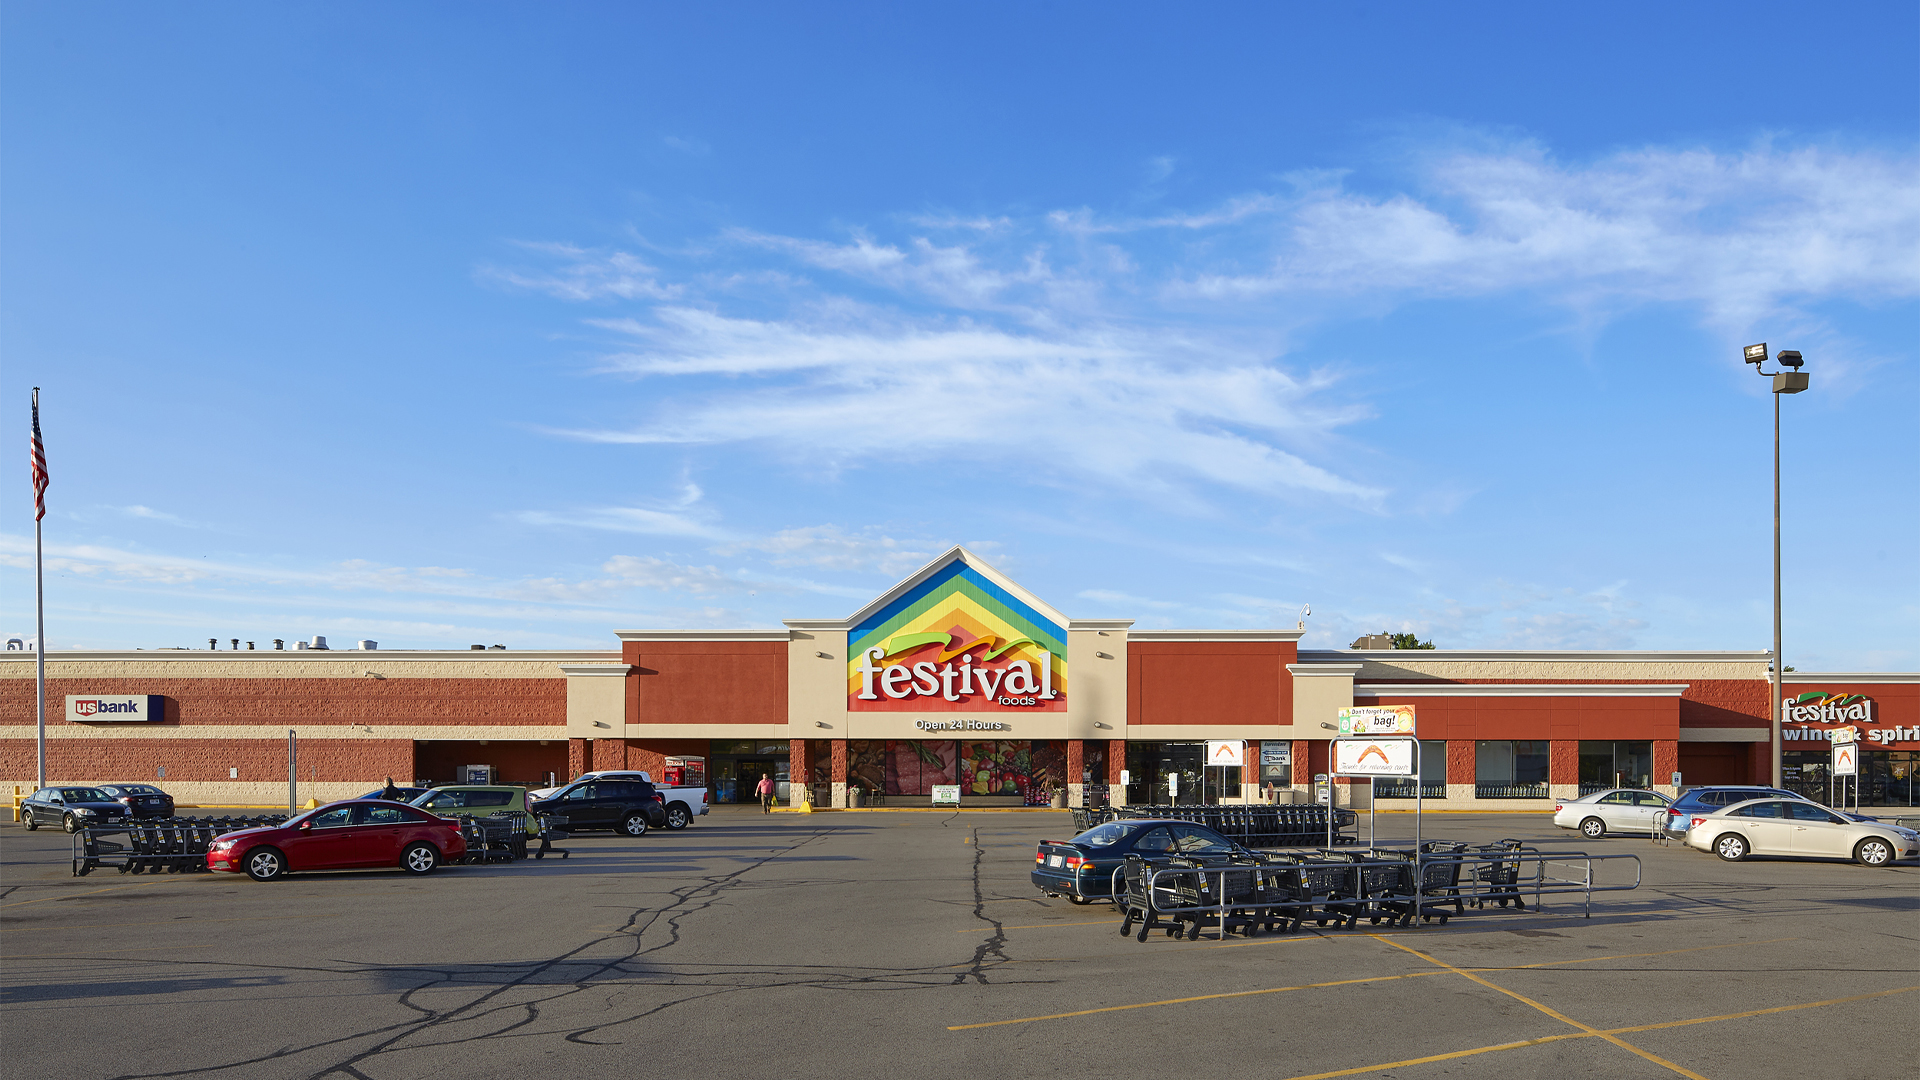 Crossing Meadows Retail Shopping Center Onalaska WI exterior view featuring Festival Foods